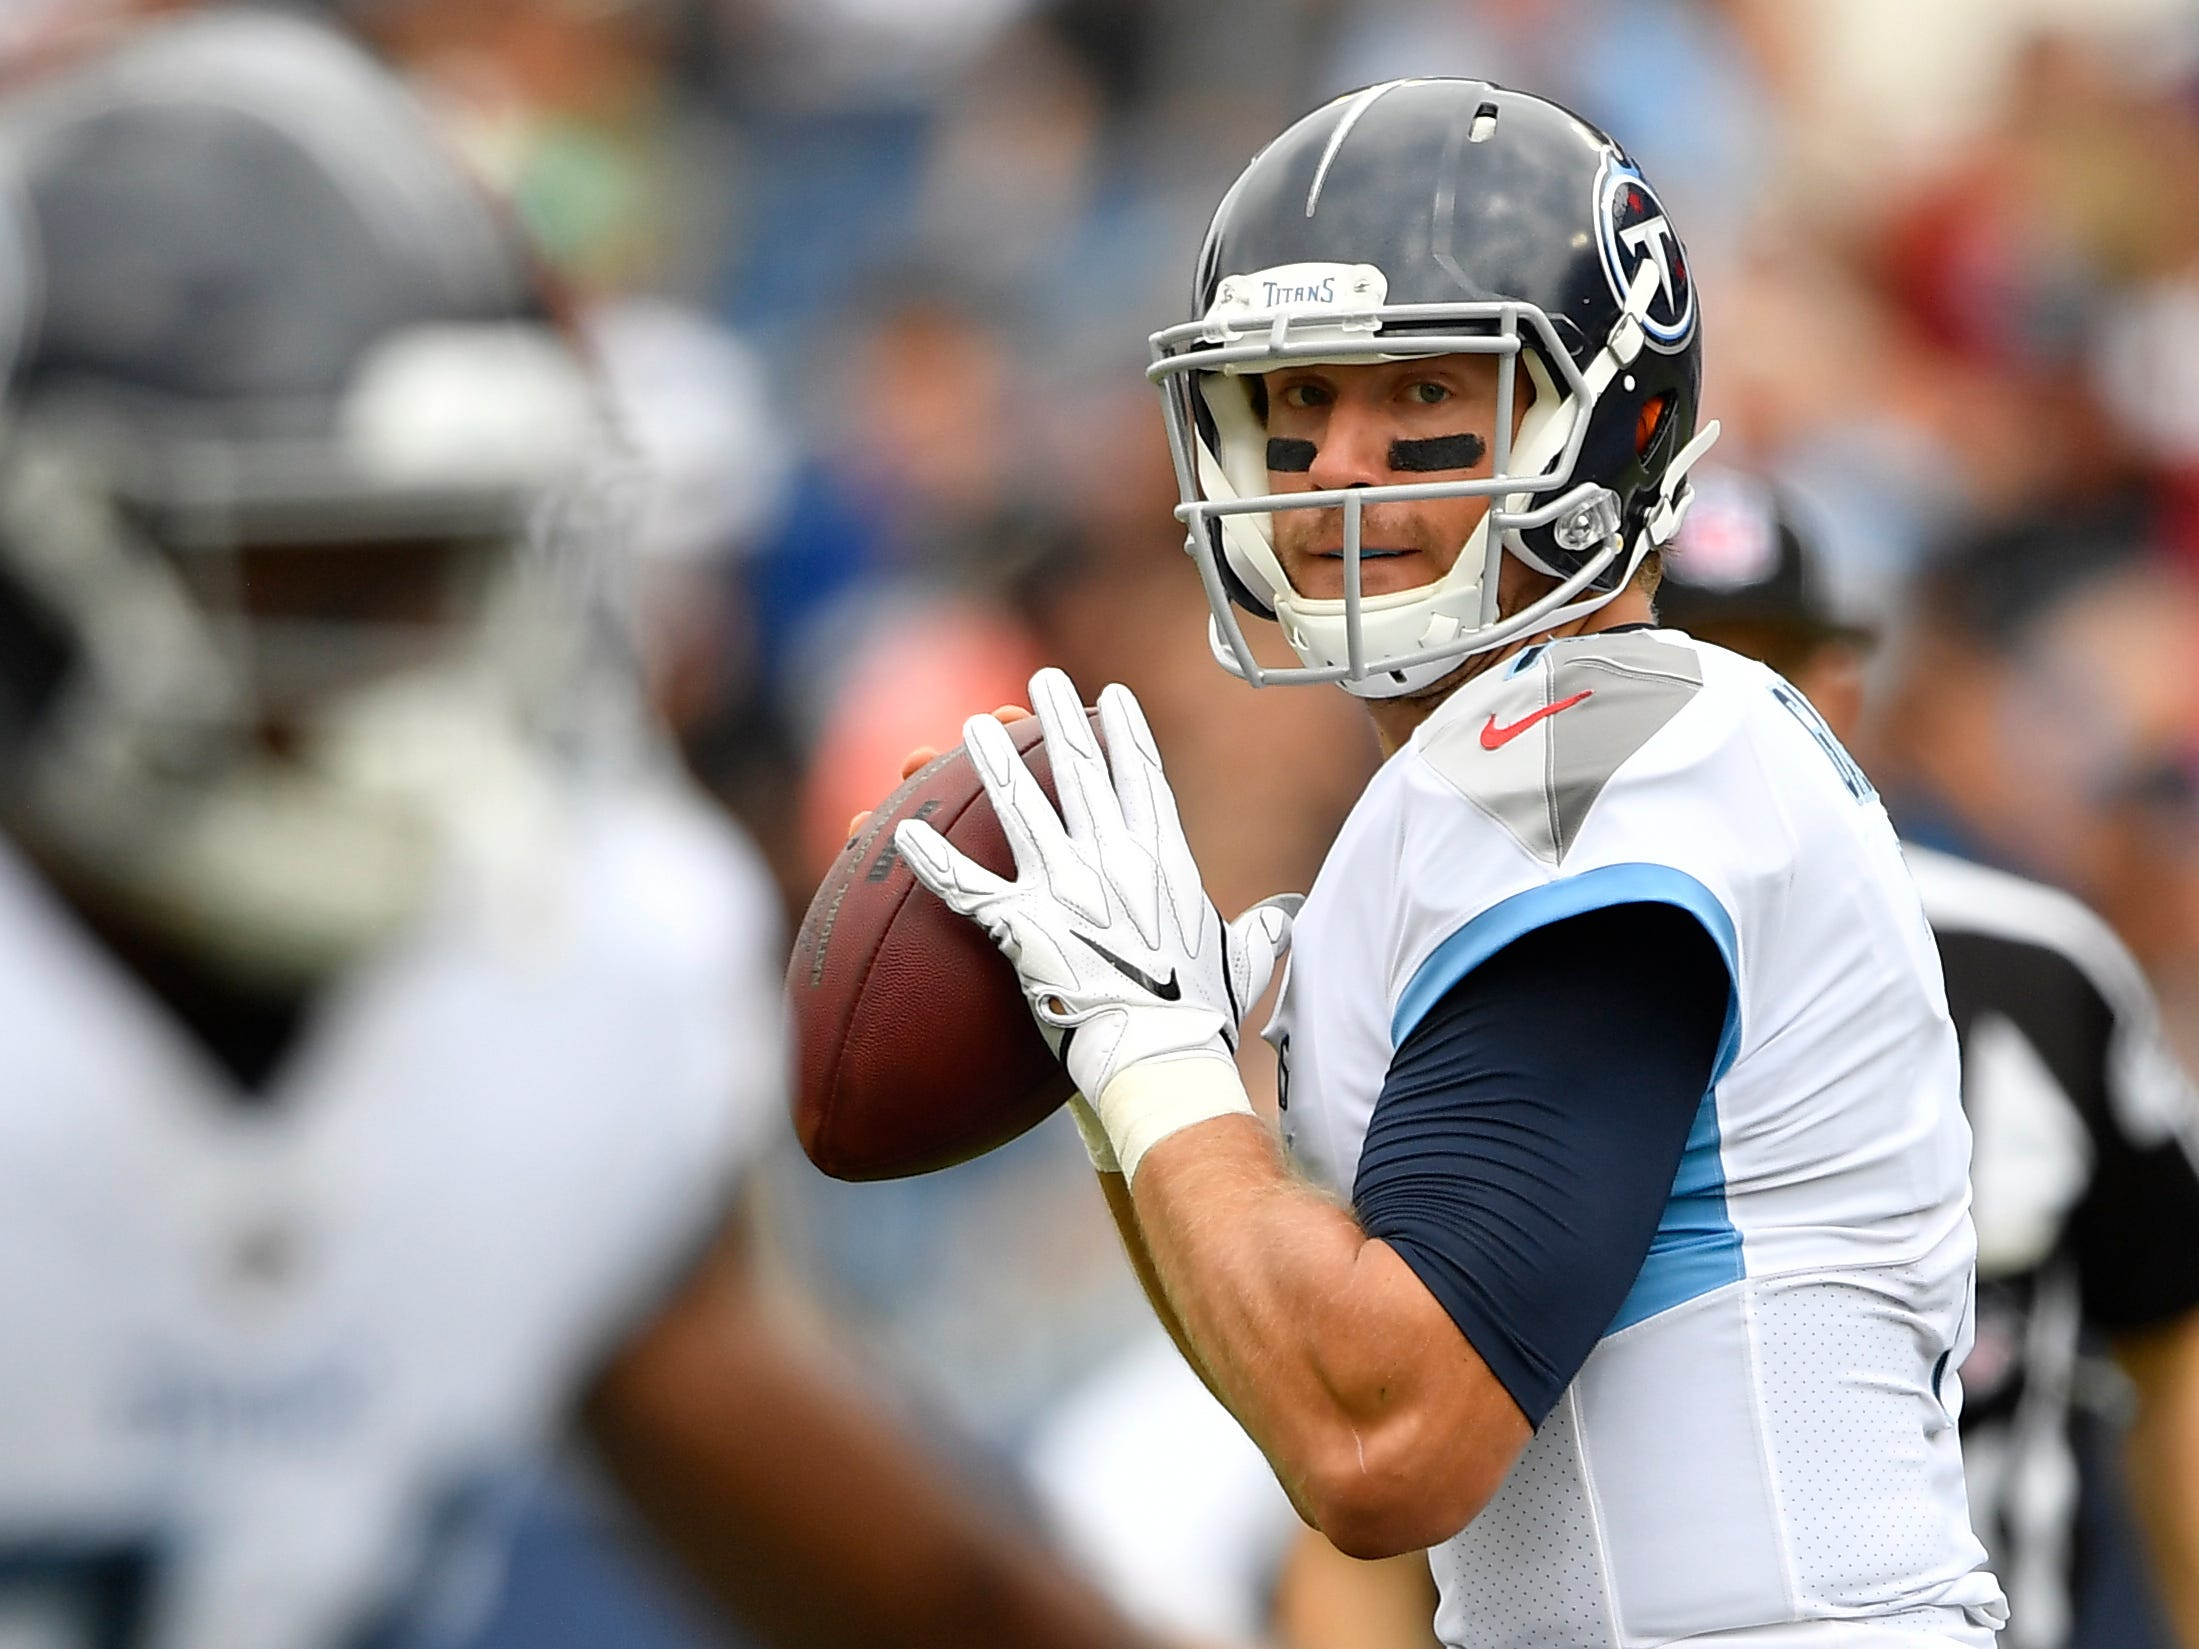 Titans quarterback Blaine Gabbert (7) looks to pass in the first half at Nissan Stadium Sunday, Sept. 16, 2018, in Nashville, Tenn.